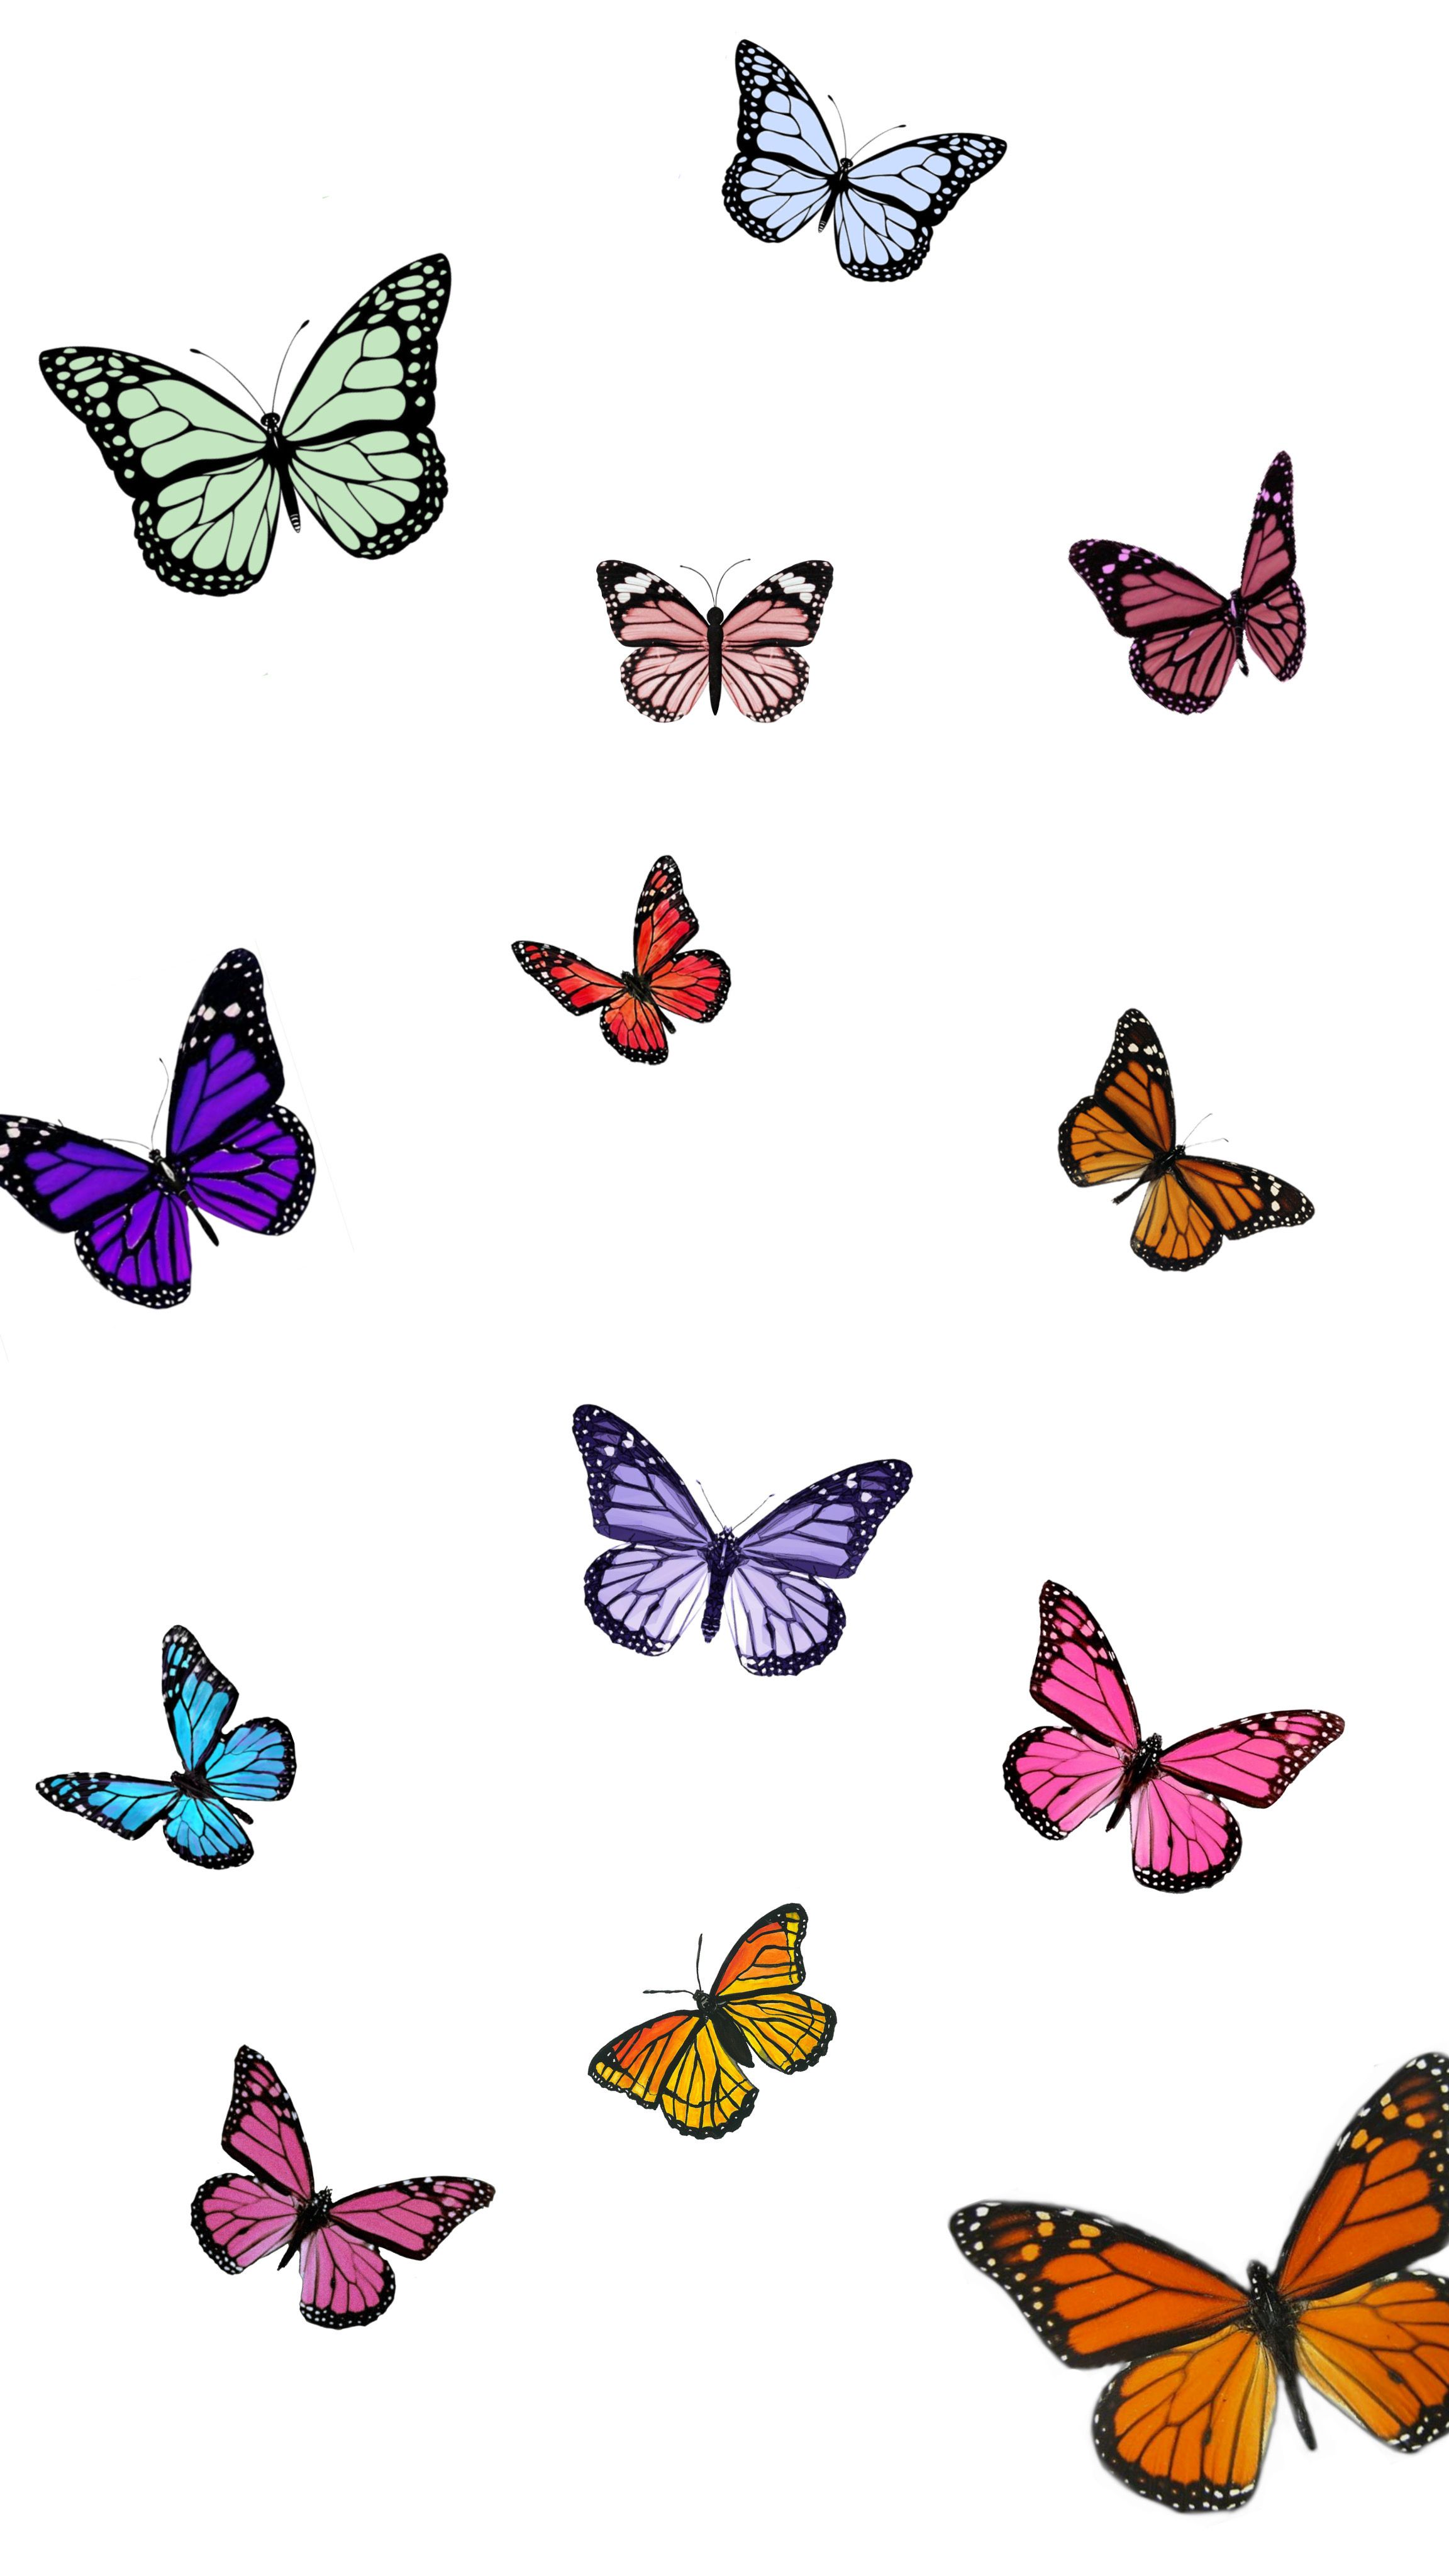 🦋🦋🦋 in 2020 | Butterfly wallpaper iphone, Aesthetic iphone ...